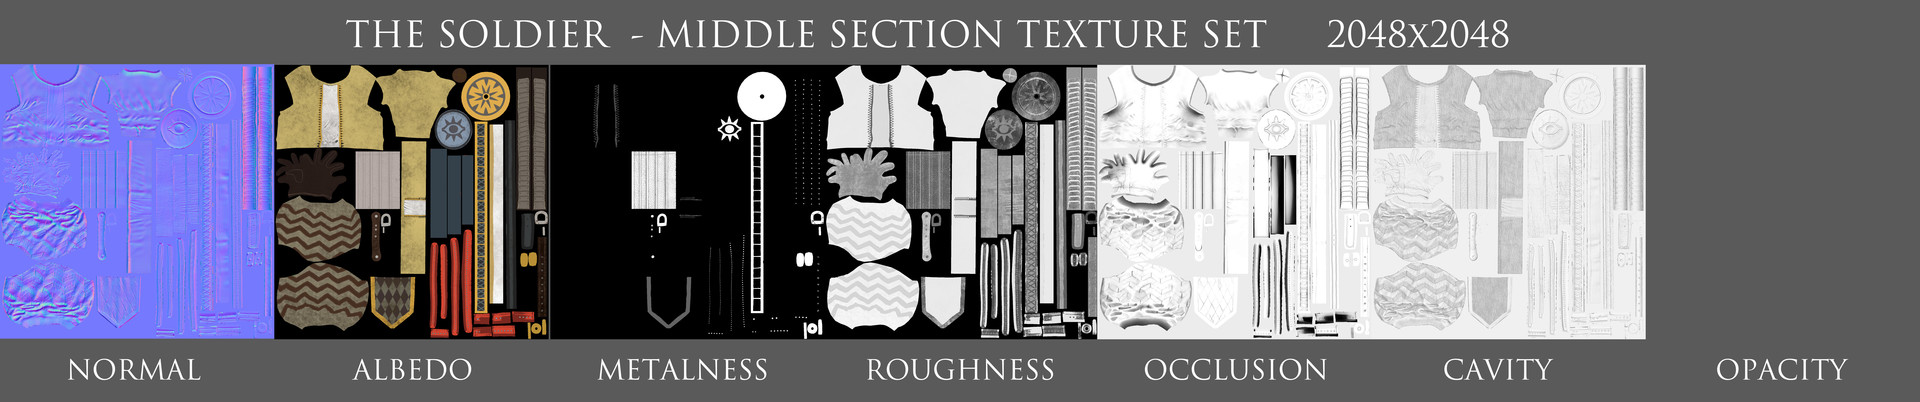 Andrew constantine middle texturesets